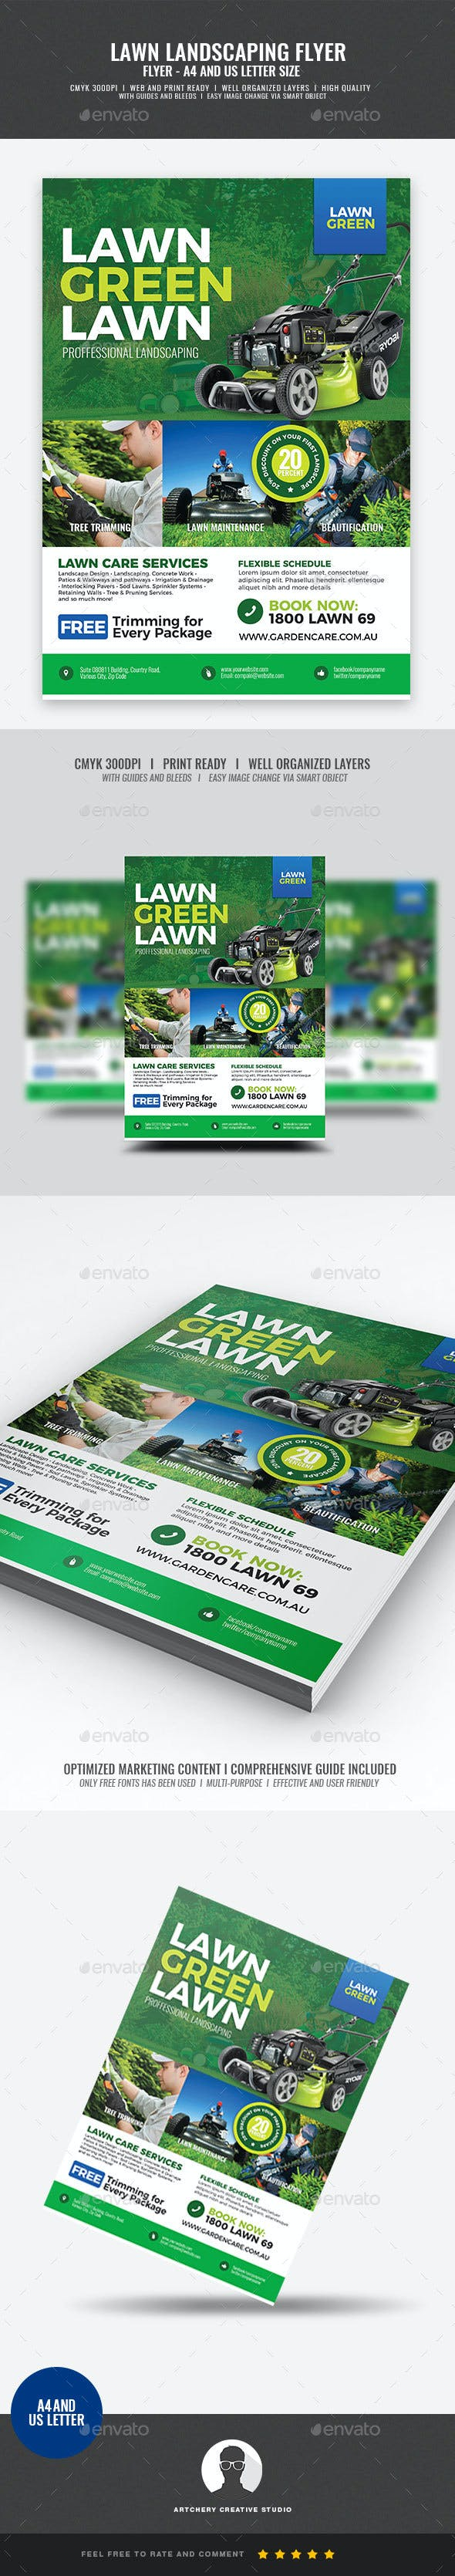 landscaping and lawn care flyer by artchery graphicriver